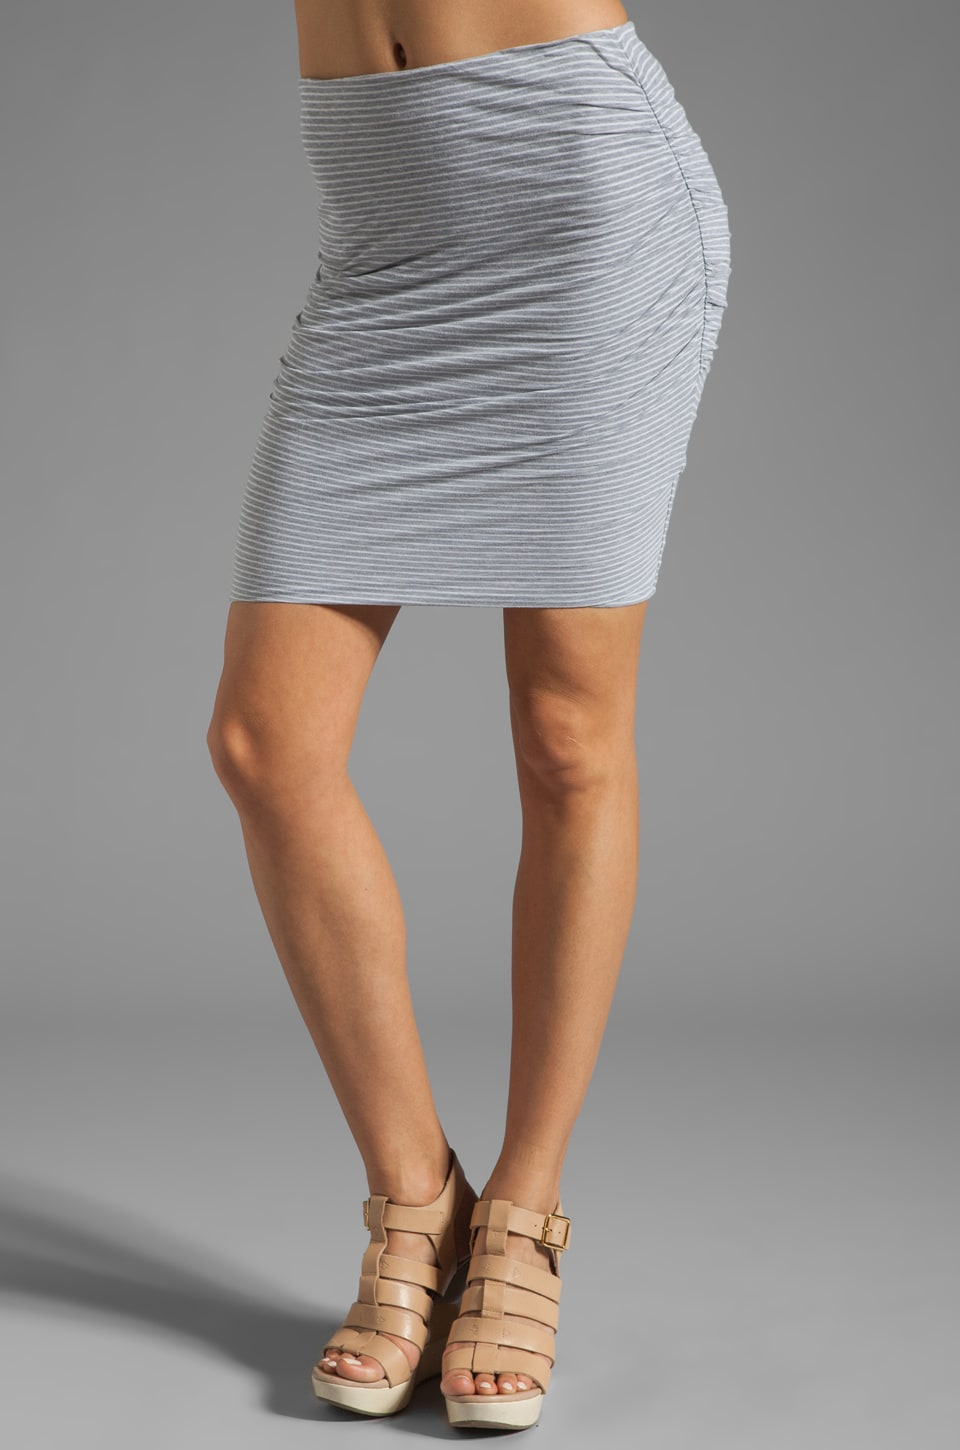 James Perse Split Back Stripe Skirt in Heather Grey/White